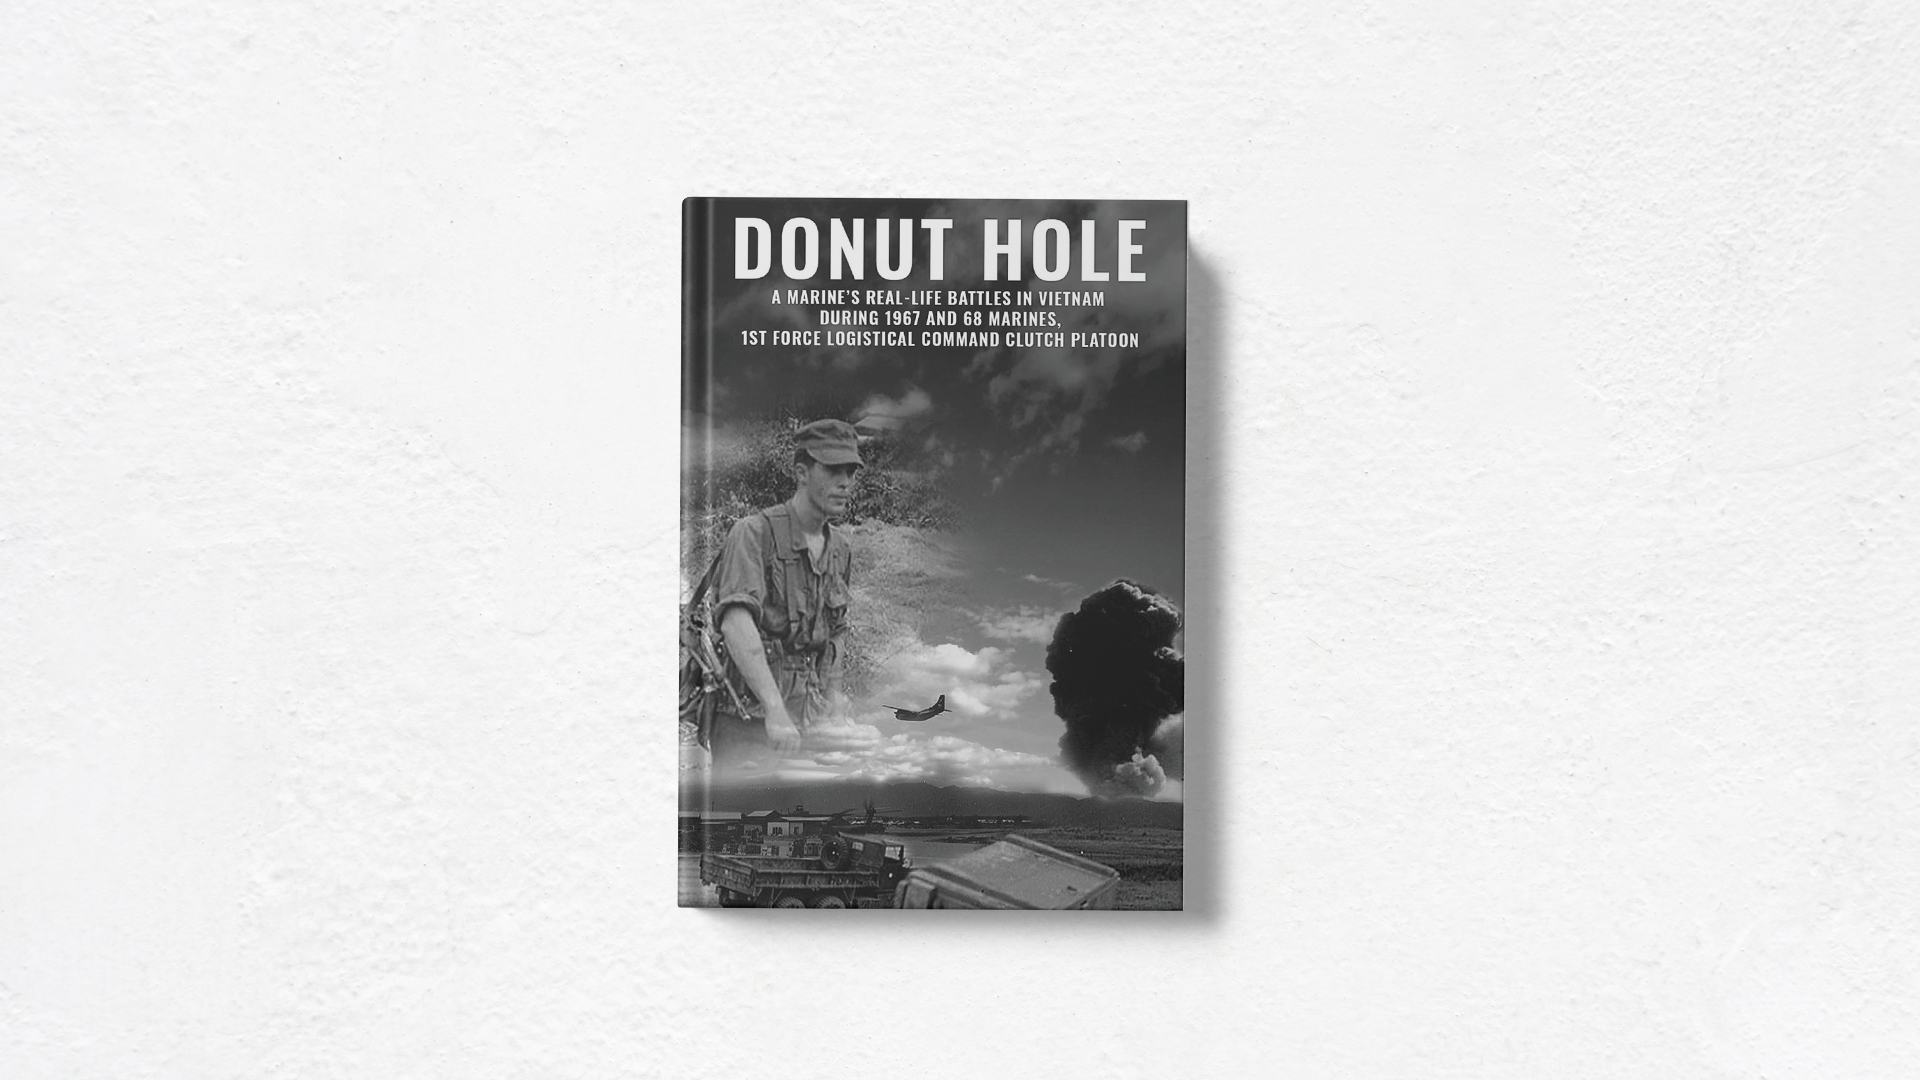 Donut Hole by RC Le Beau book cover white background